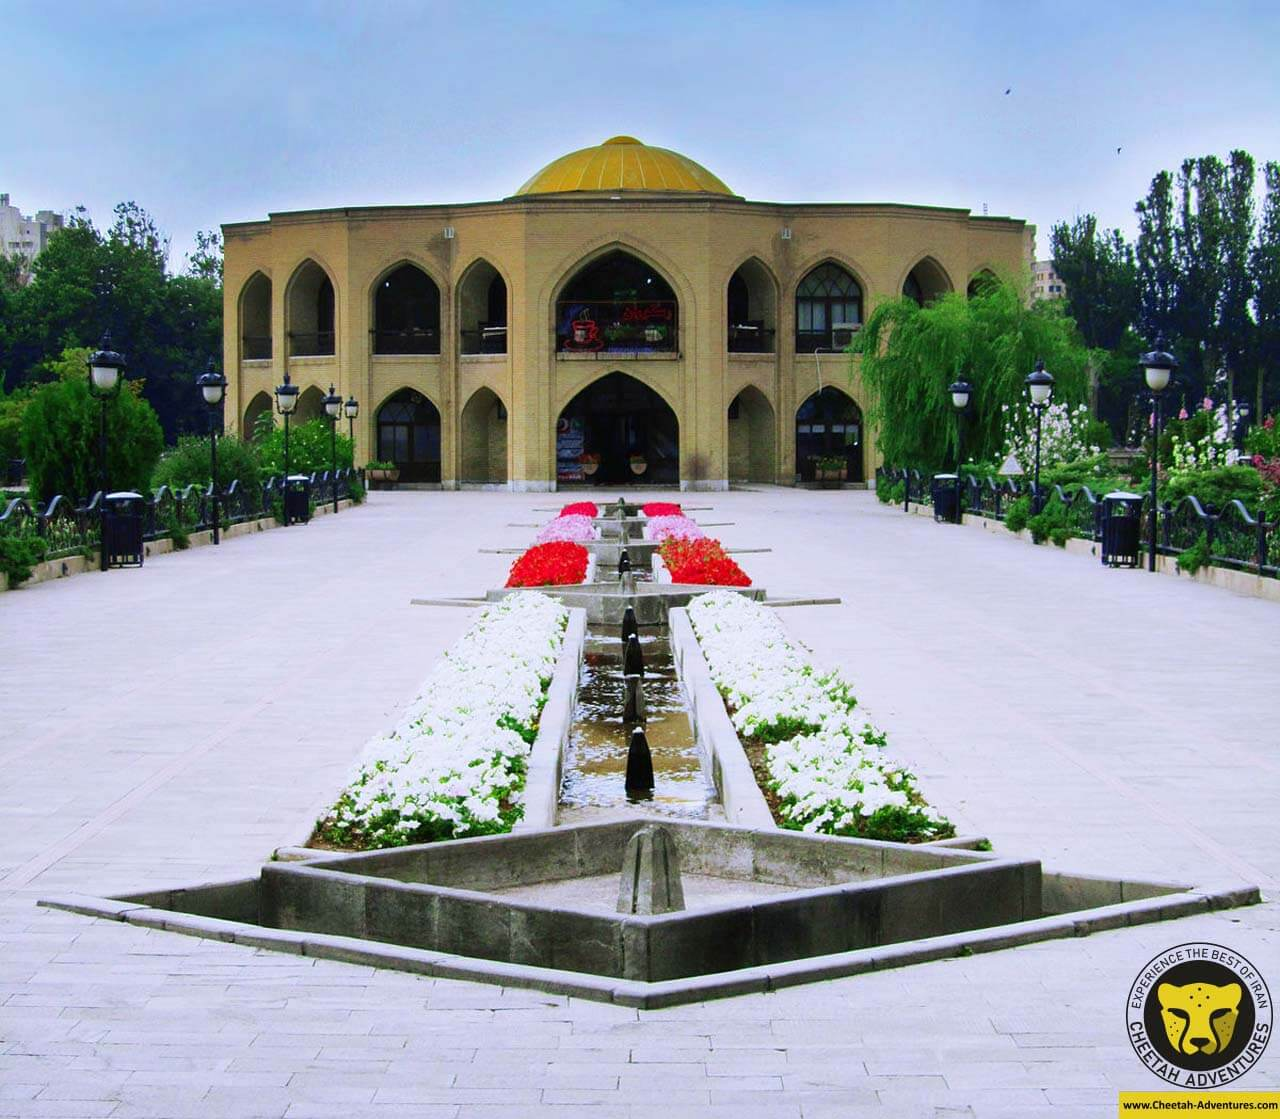 Elgoli park tabriz iran tour travel cheetah adventures